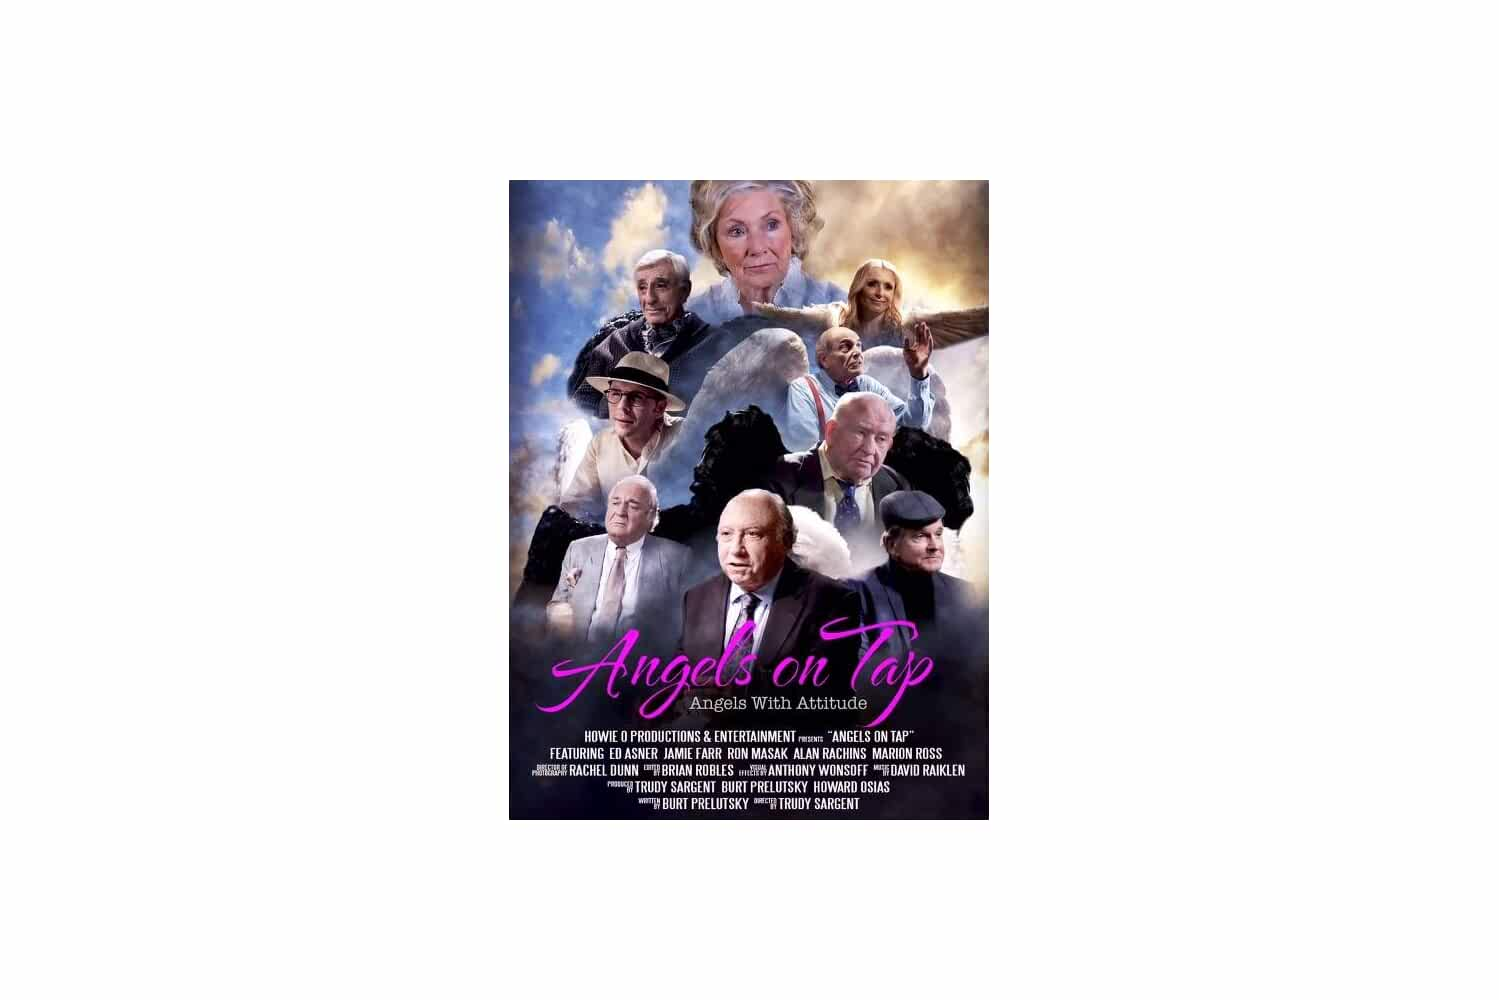 Angels on Tap (2018)